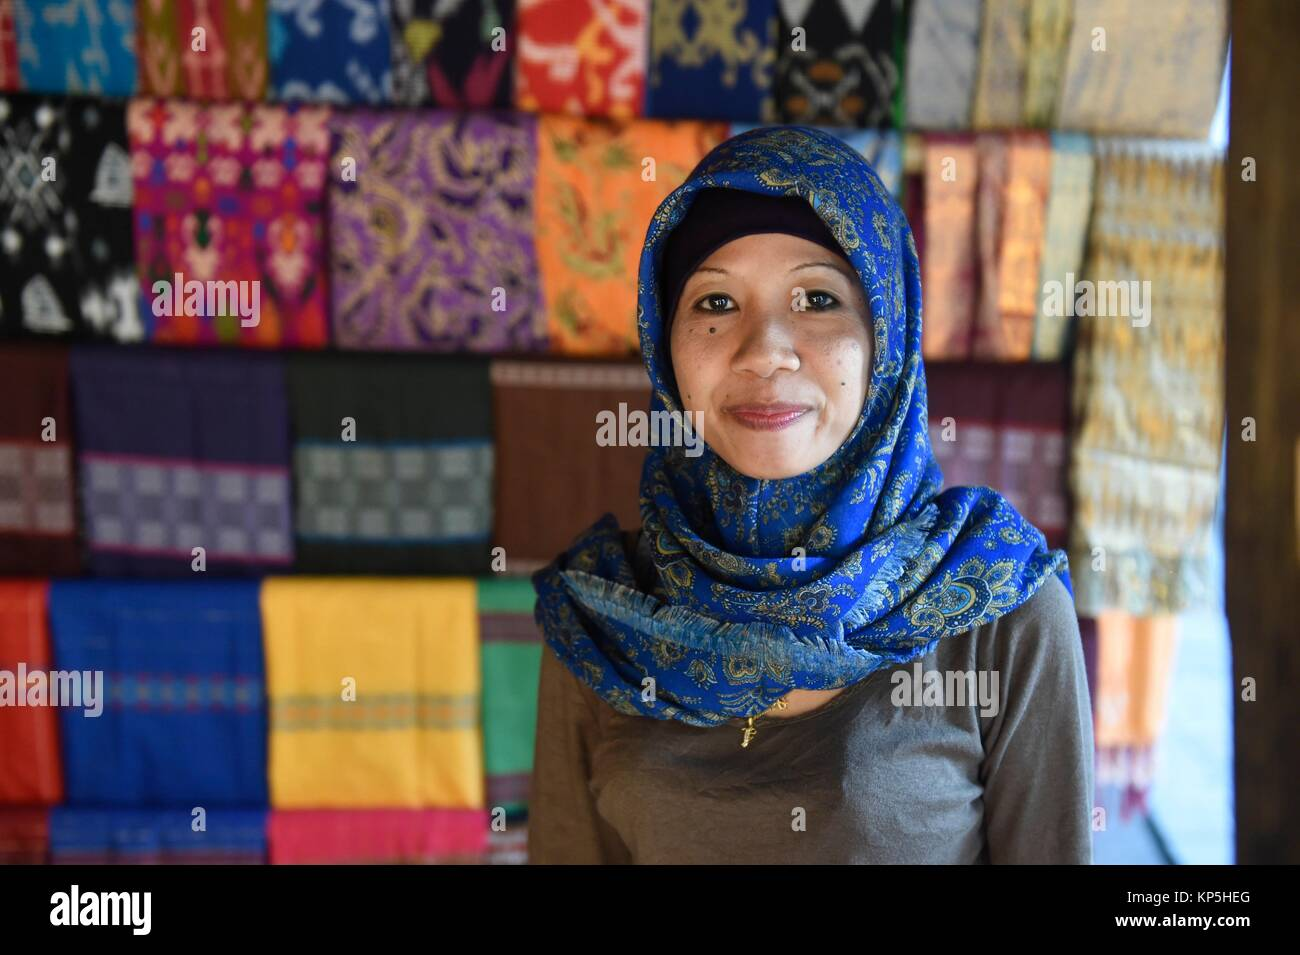 Local woman sell woven textile products as souvenir, Sasak village,Sade,Lombok island,Indonesia. - Stock Image